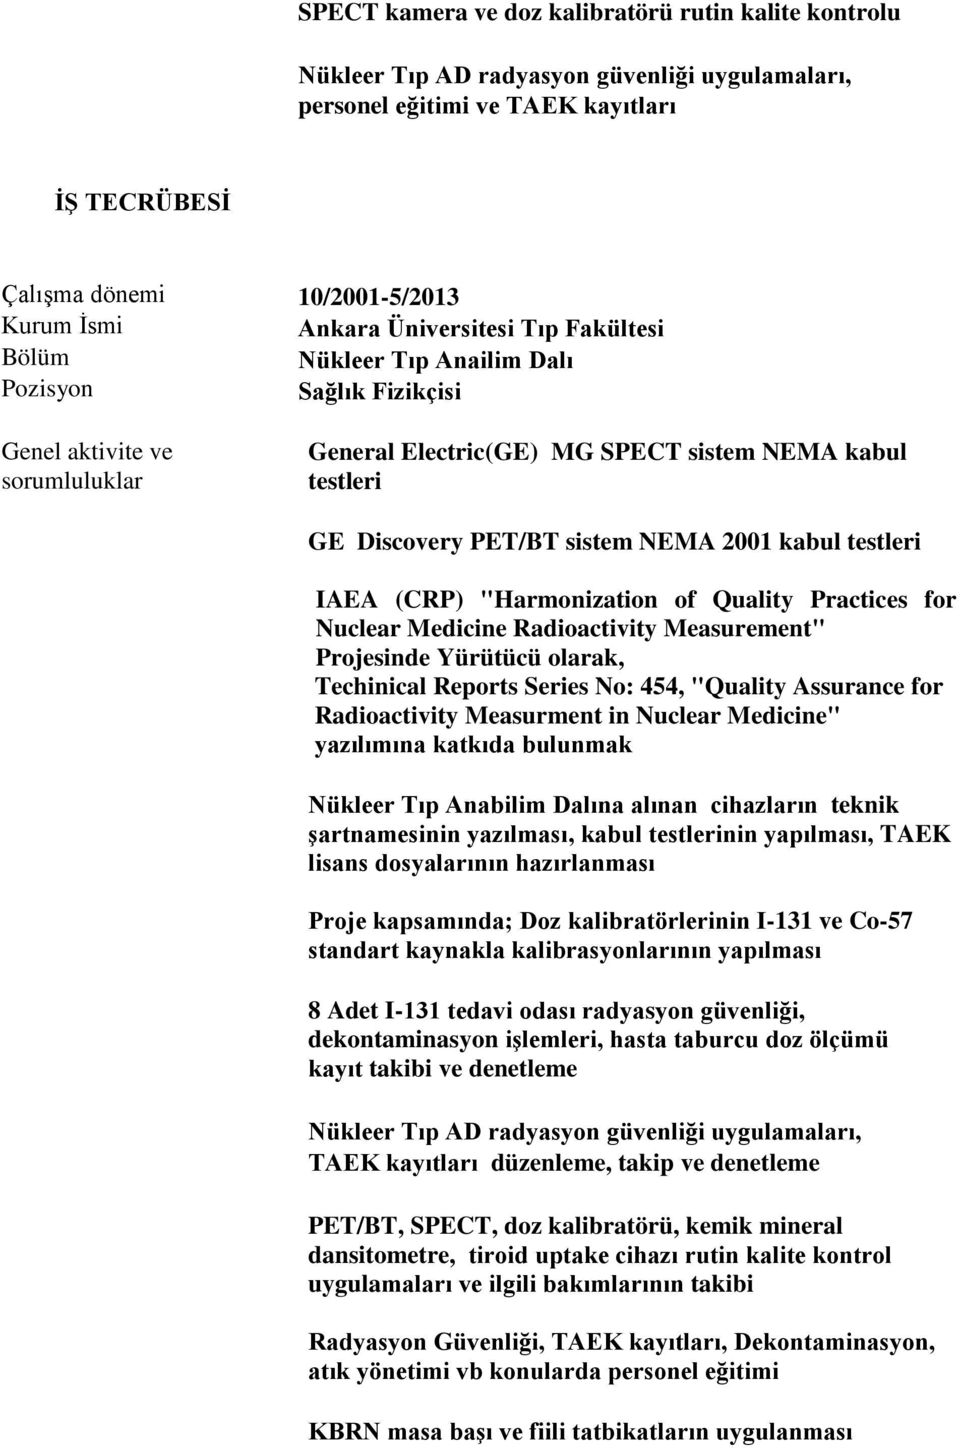 "Quality Practices for Nuclear Medicine Radioactivity Measurement"" Projesinde Yürütücü olarak, Techinical Reports Series No: 454, ""Quality Assurance for Radioactivity Measurment in Nuclear Medicine"""